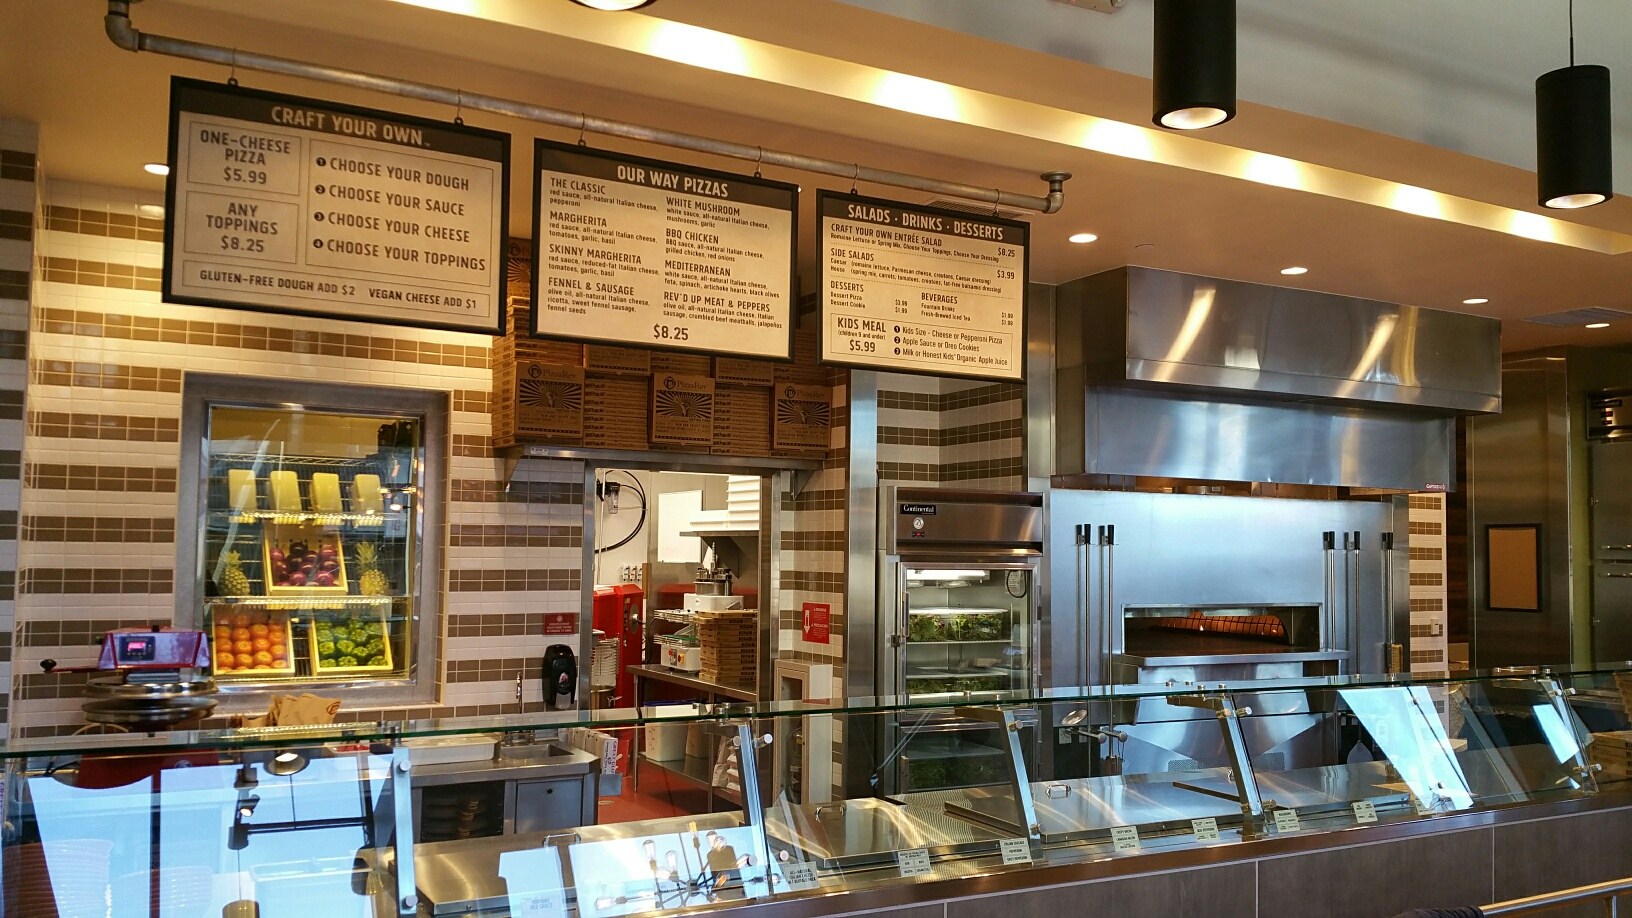 Restaurant remodel by H.W. Holmes Inc. - Pizza Rev